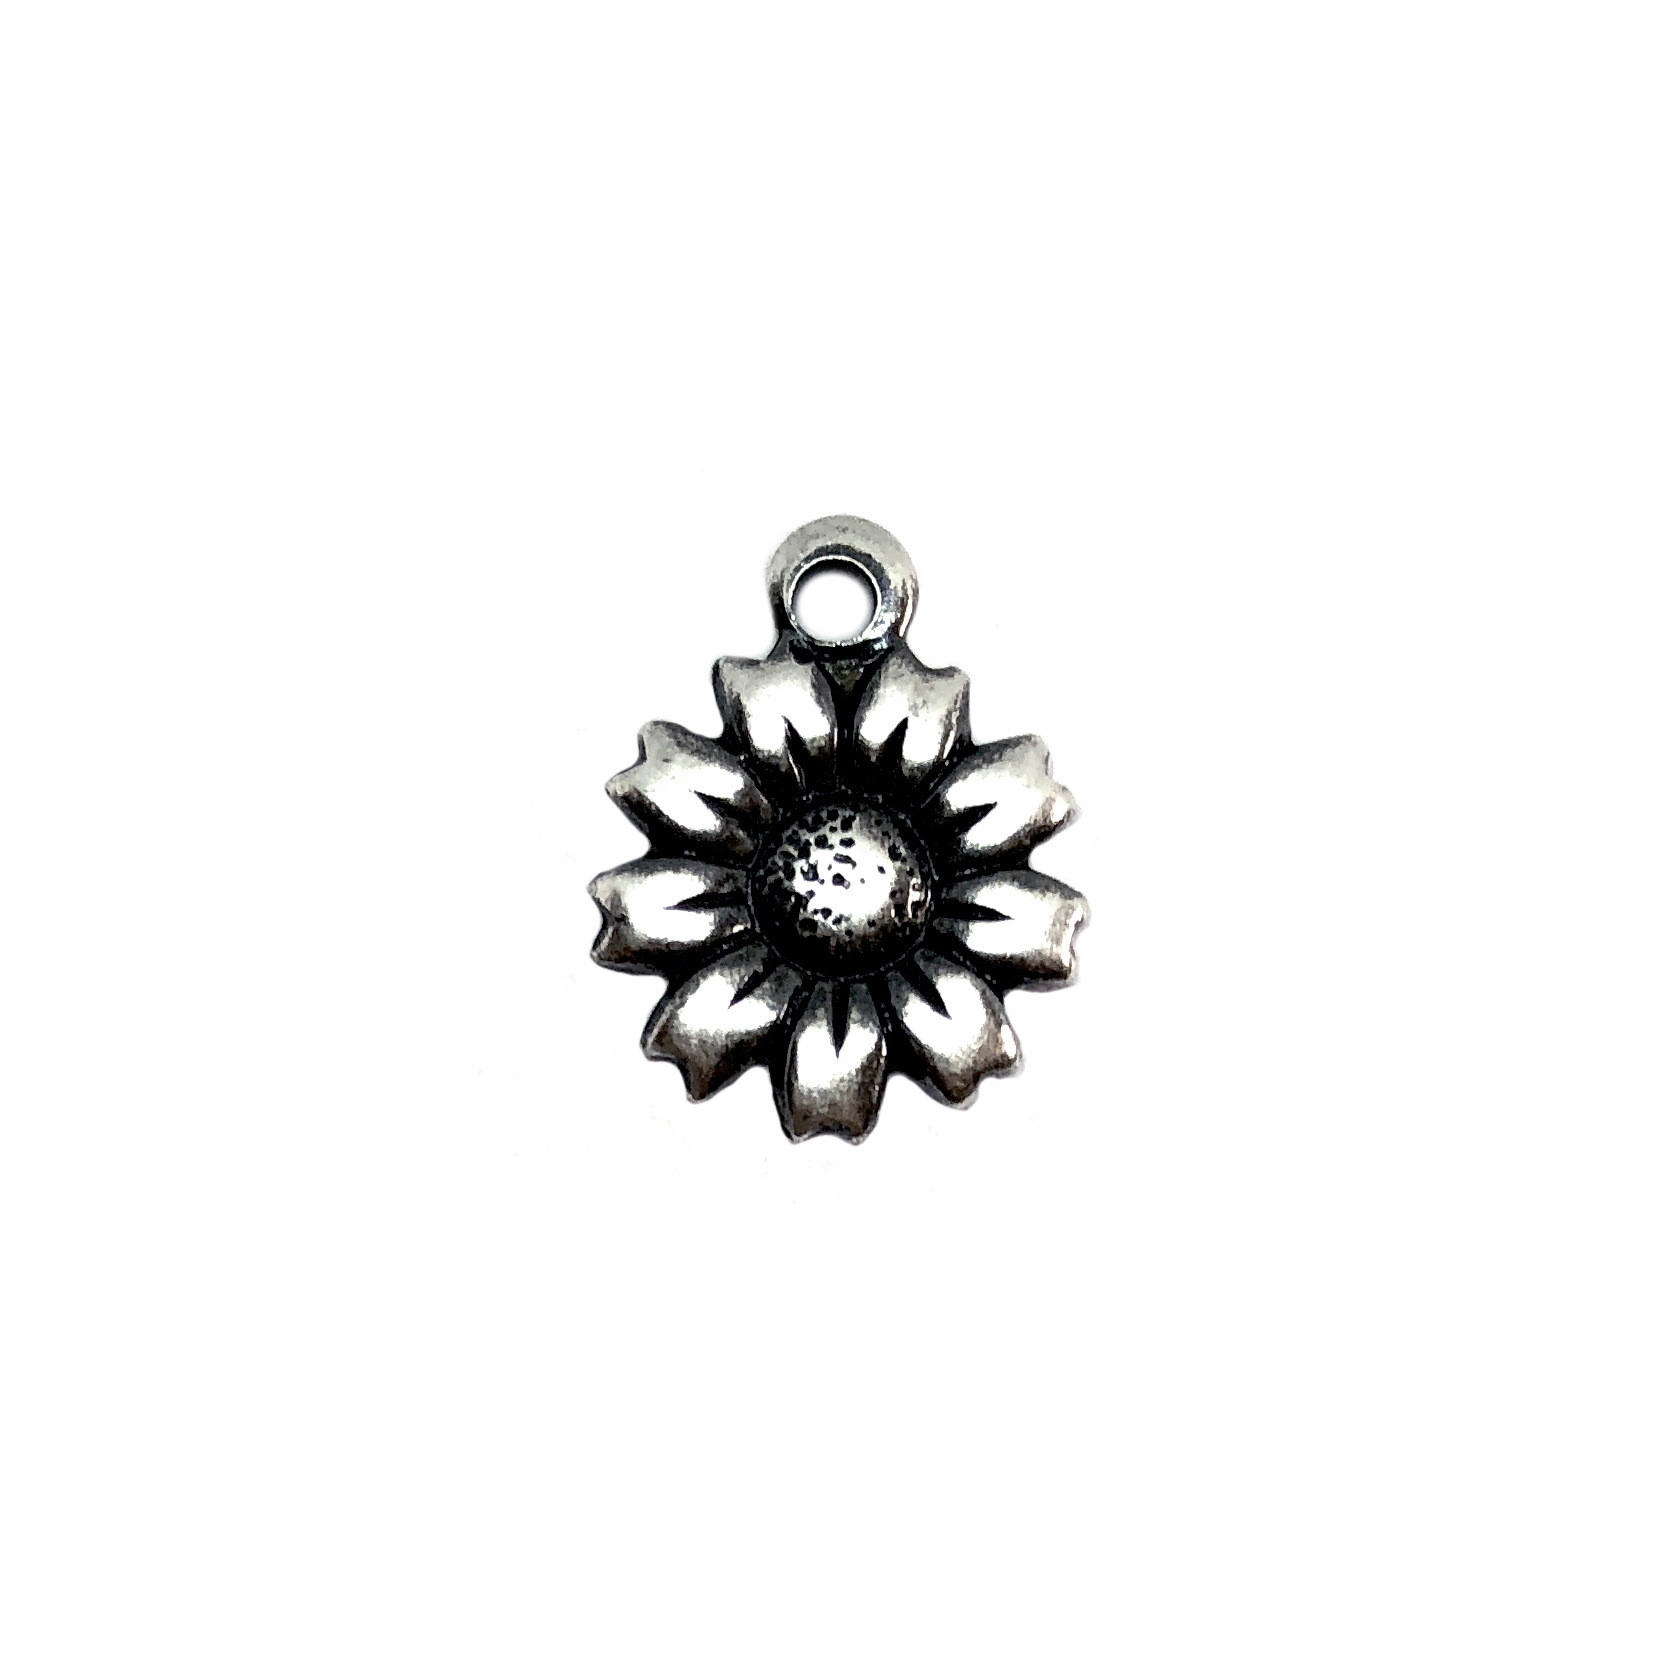 silver plated charm, daisies, silver, 06399, B'sue Boutiques, nickel free jewelry supplies, US made jewelry supplies, vintage jewelry supplies, silverware silverplate, antique silver, flower charm, daisy